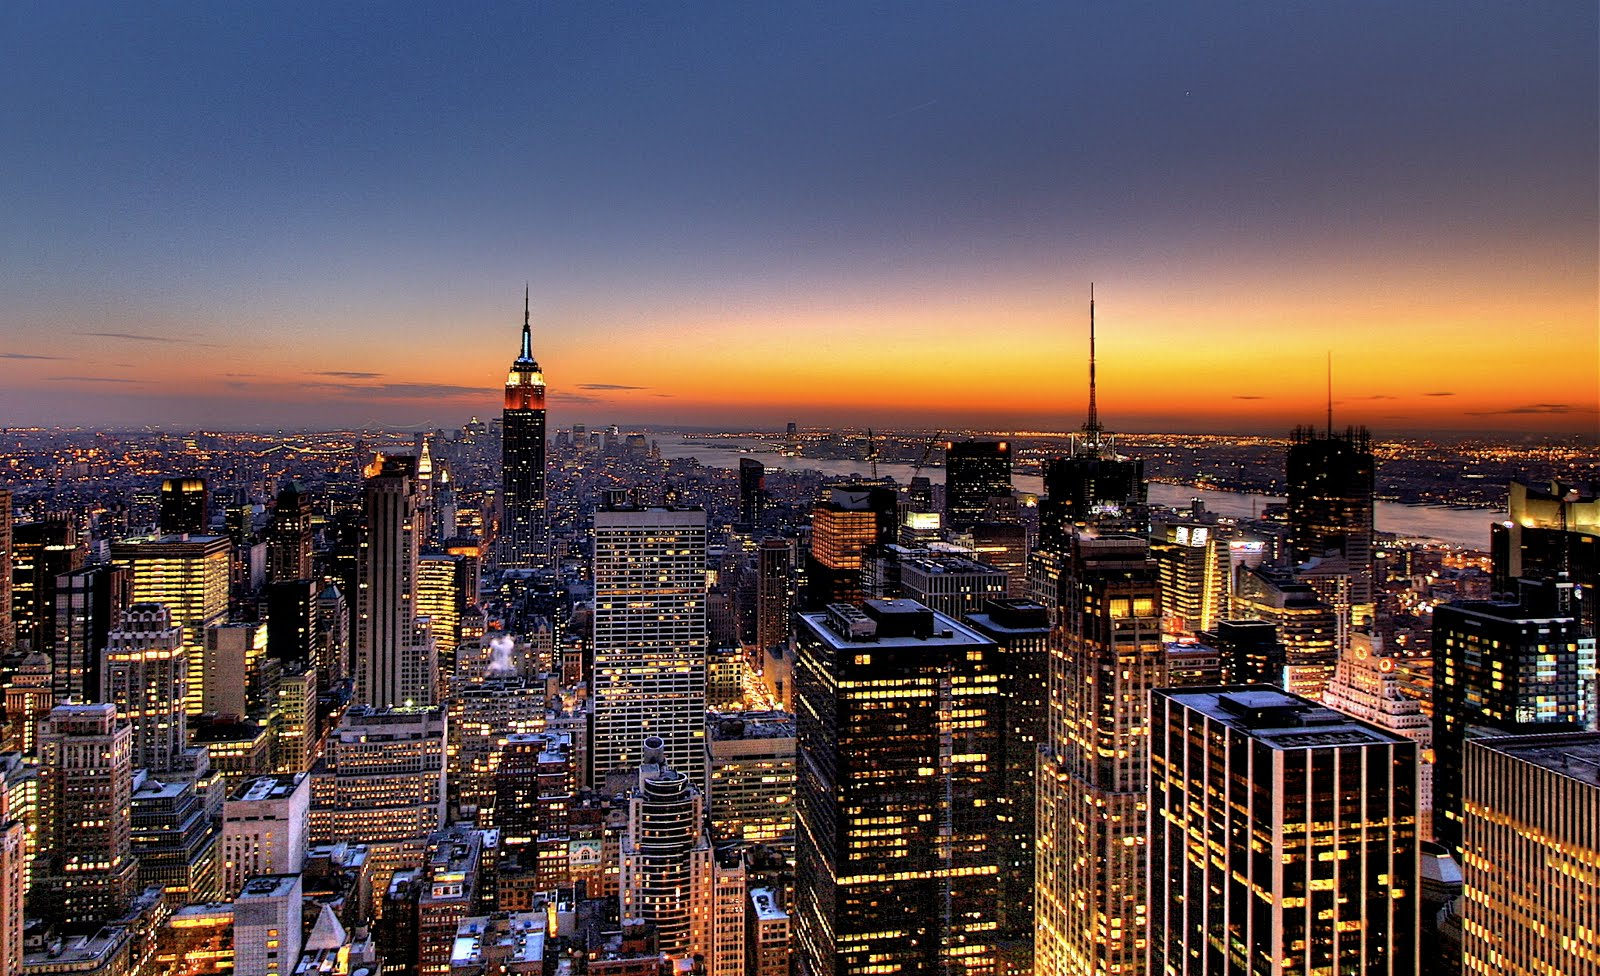 New York City Skyline   Sunset Wallpaper Hd Desktop 1600x976